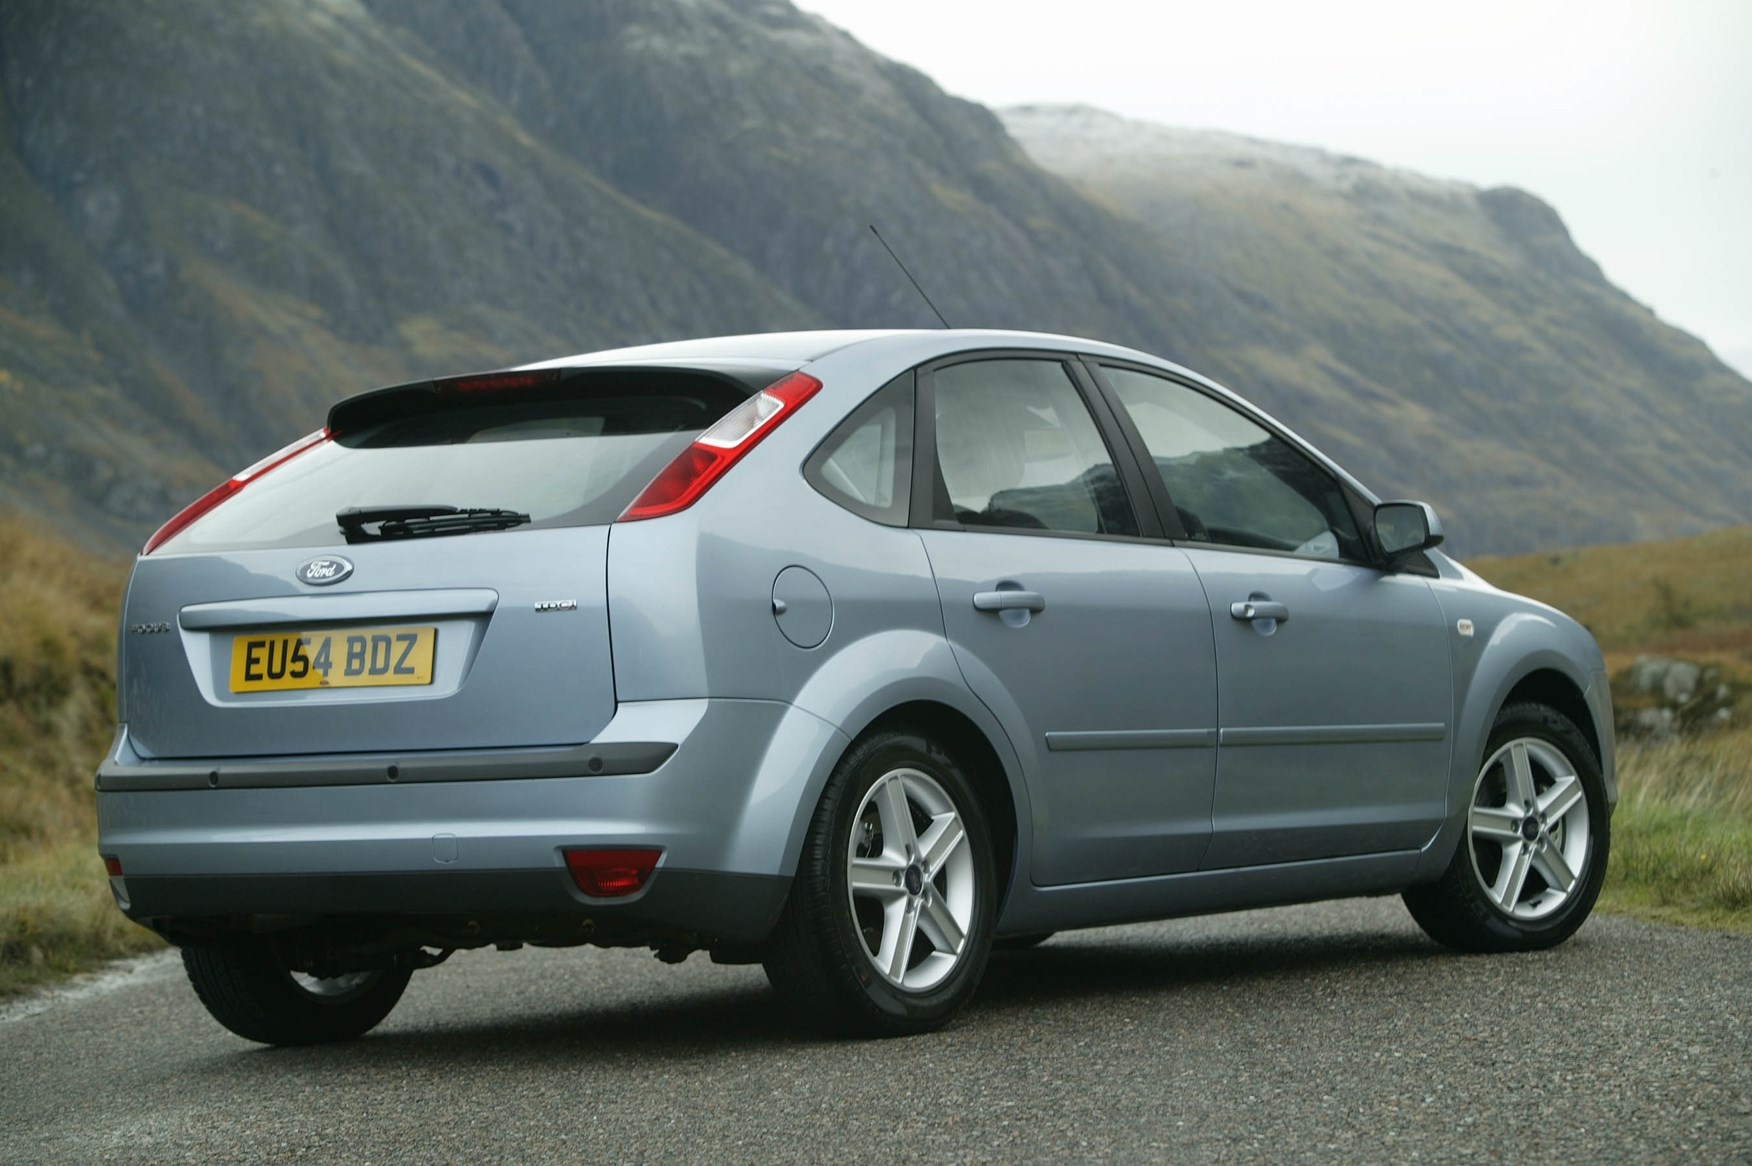 Ford Focus Hatchback Review (2005 - 2011) | Parkers